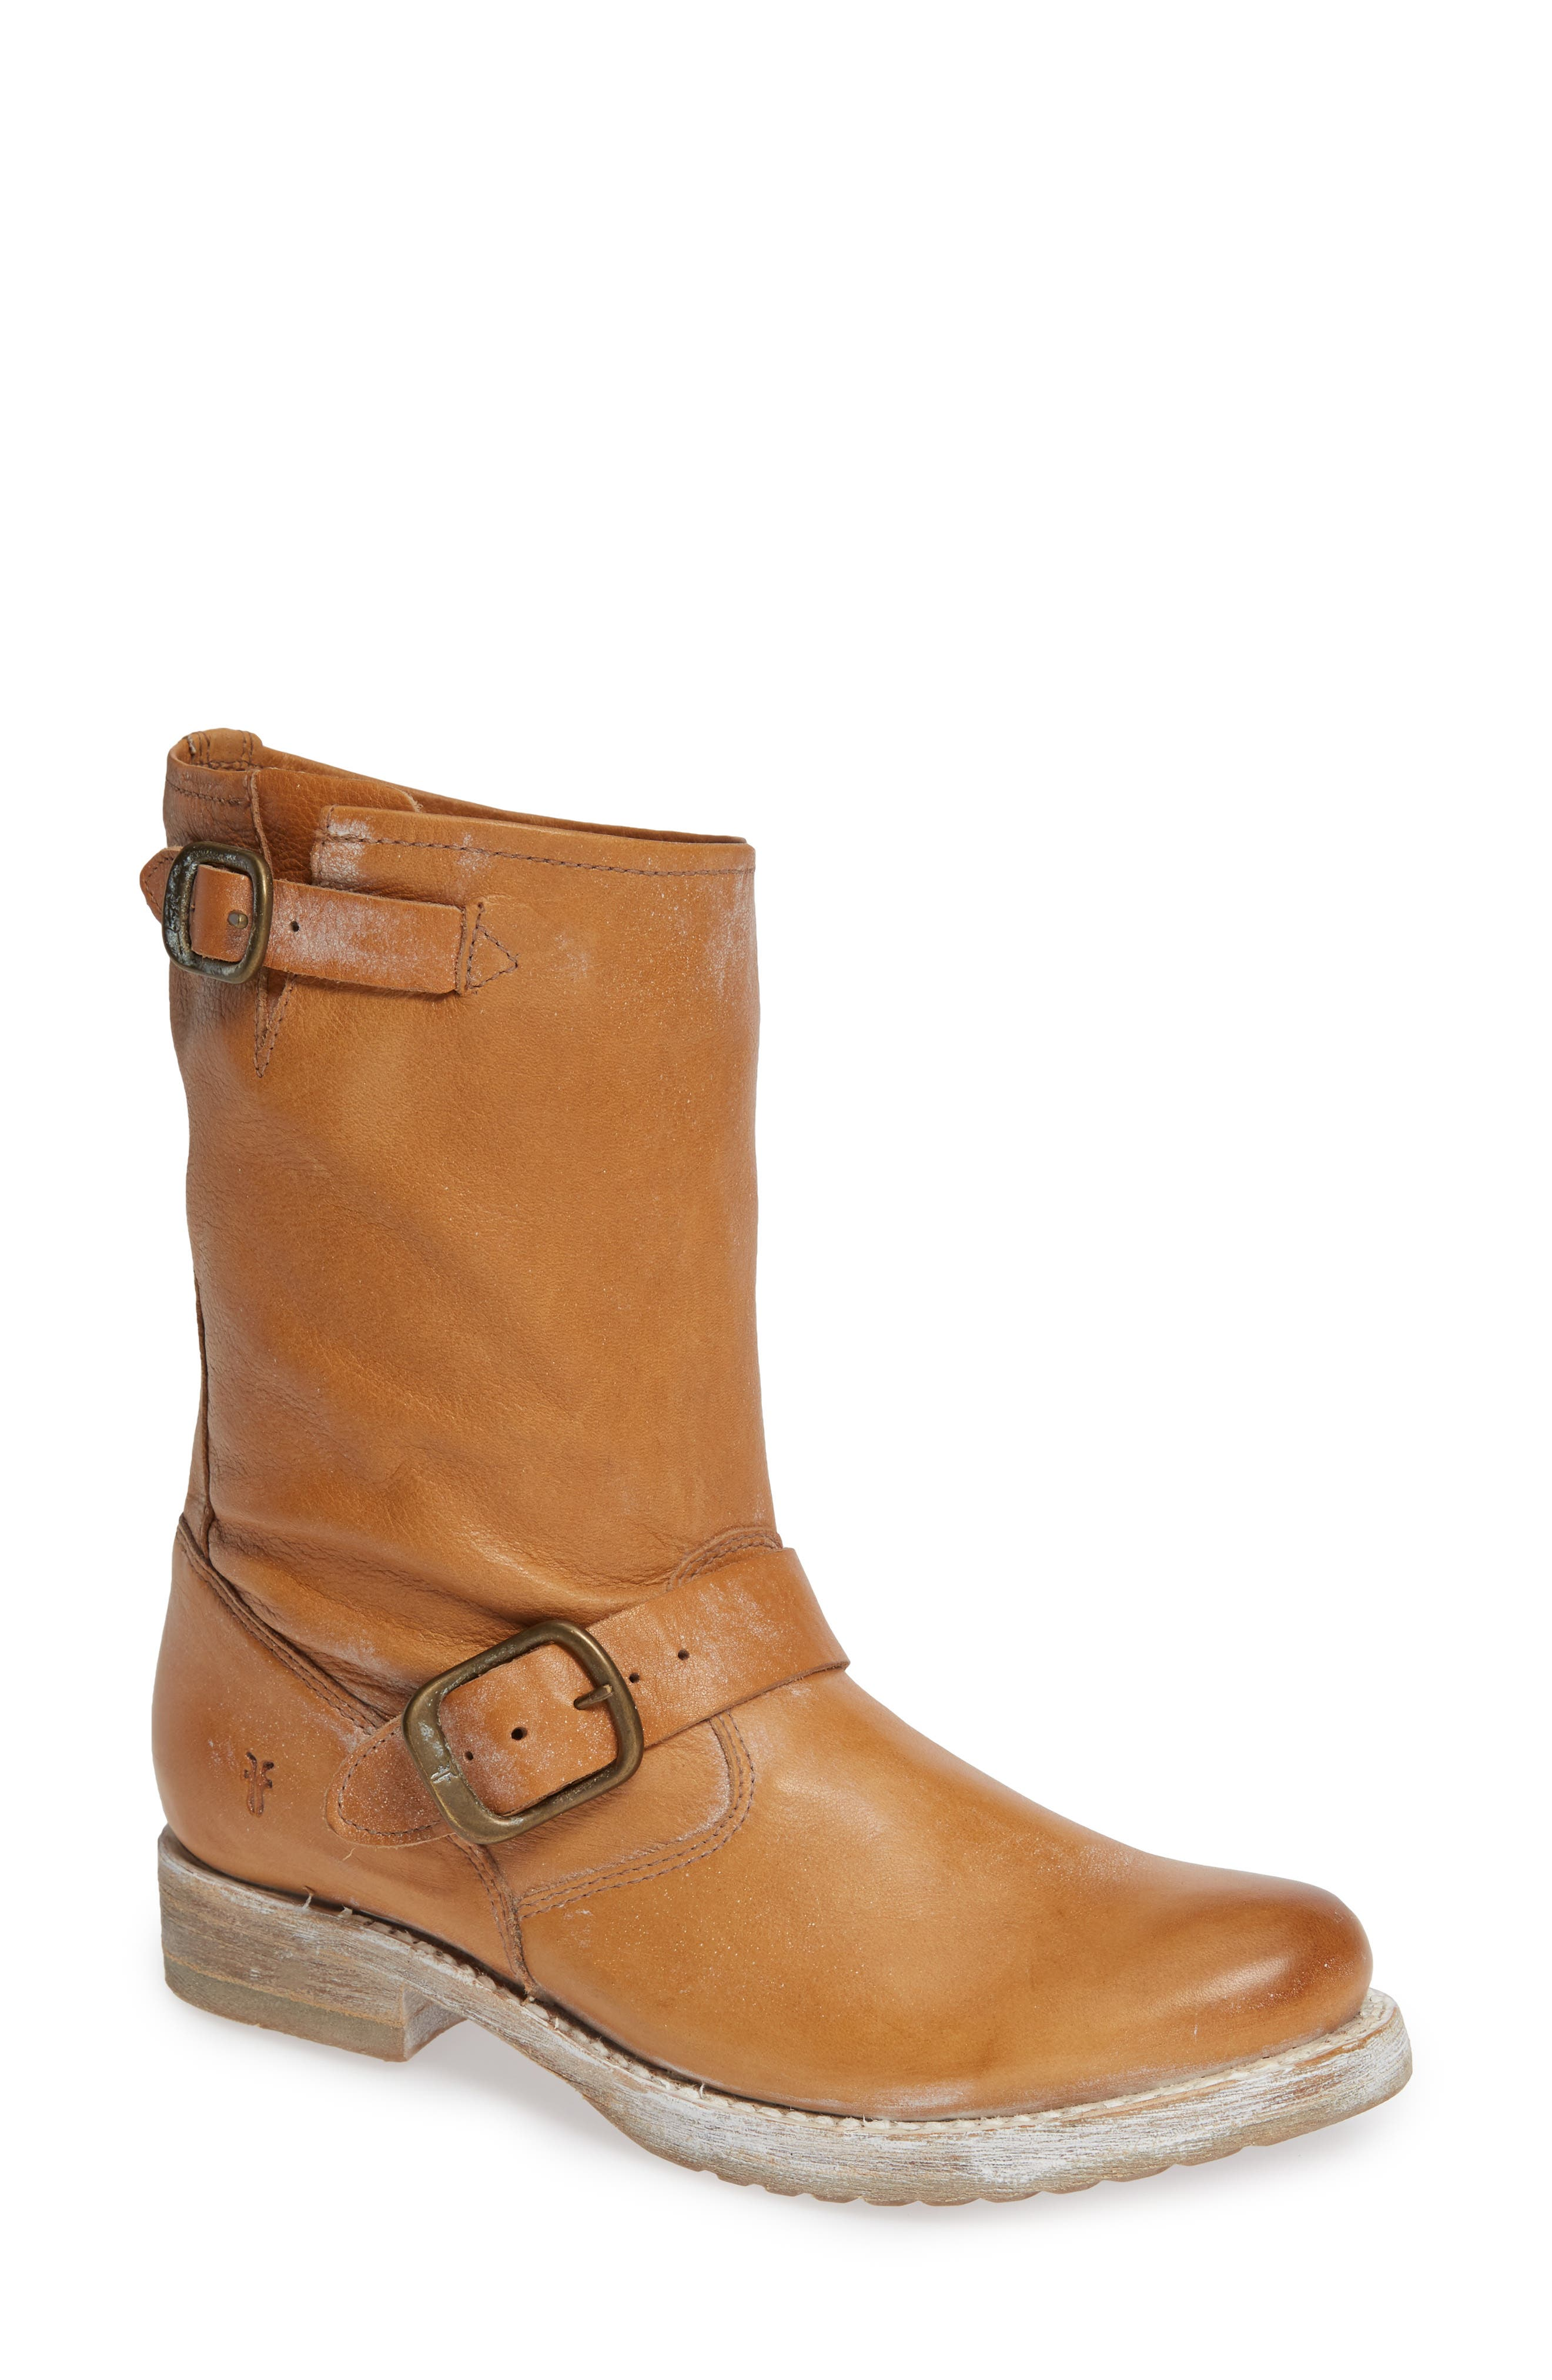 'Veronica Short' Slouchy Boot,                             Main thumbnail 1, color,                             TAN LEATHER